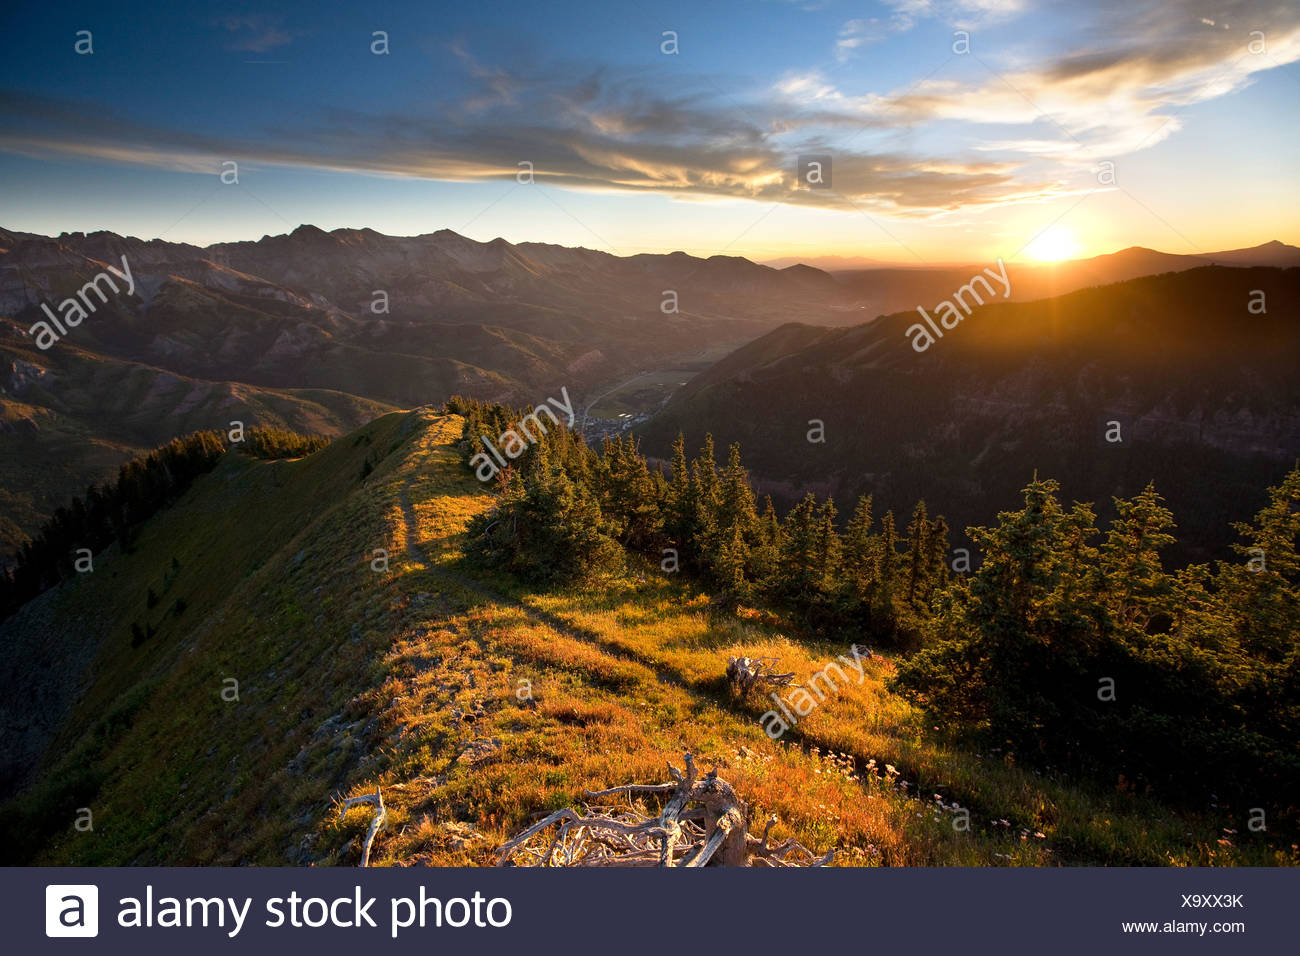 Ballard mountain, Telluride, Colorado. - Stock Image